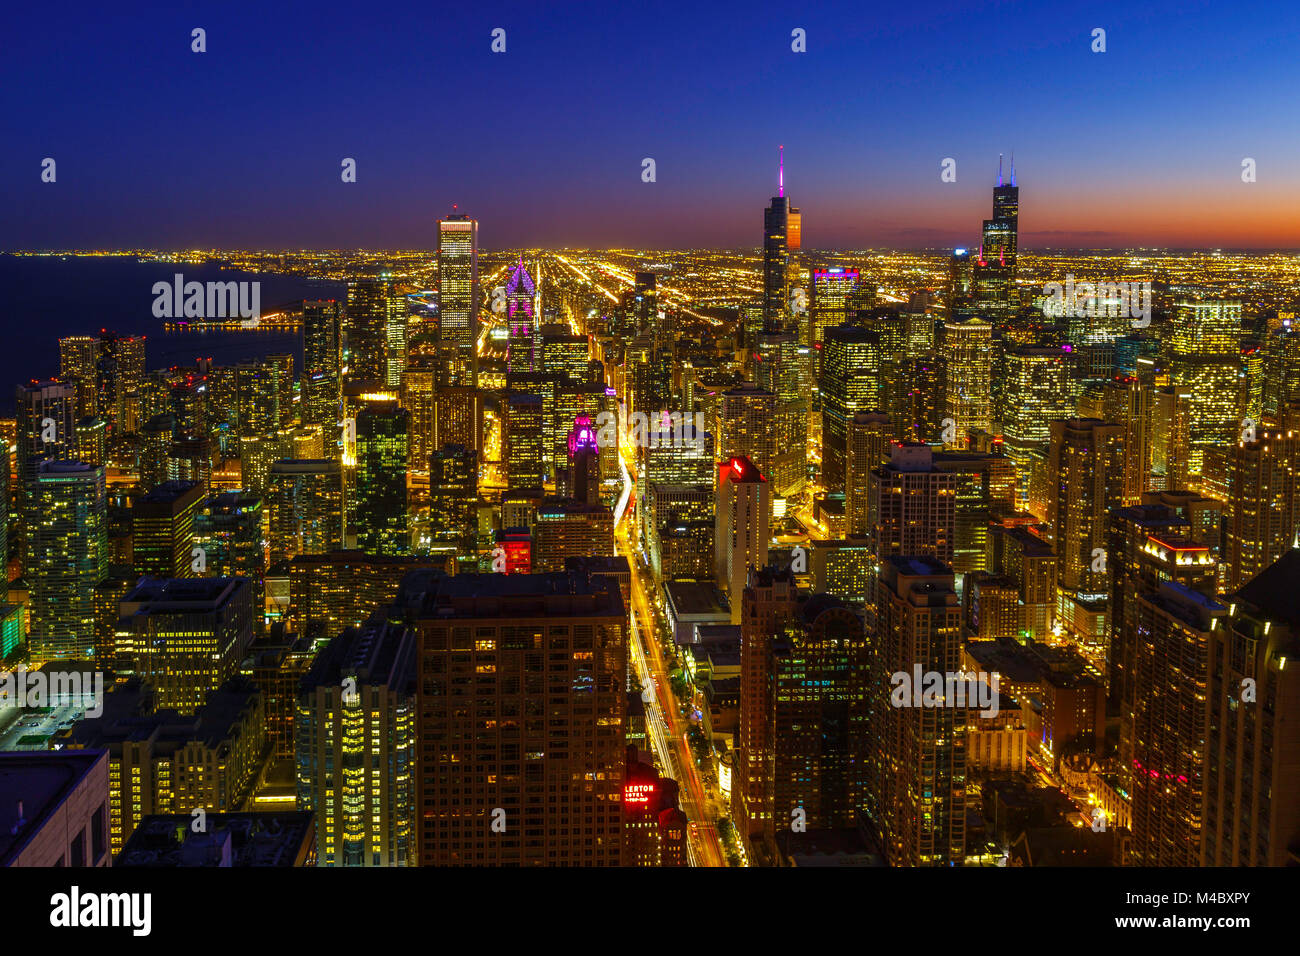 The Chicago Skyline viewed from the top of the John Hancock Tower. Stock Photo